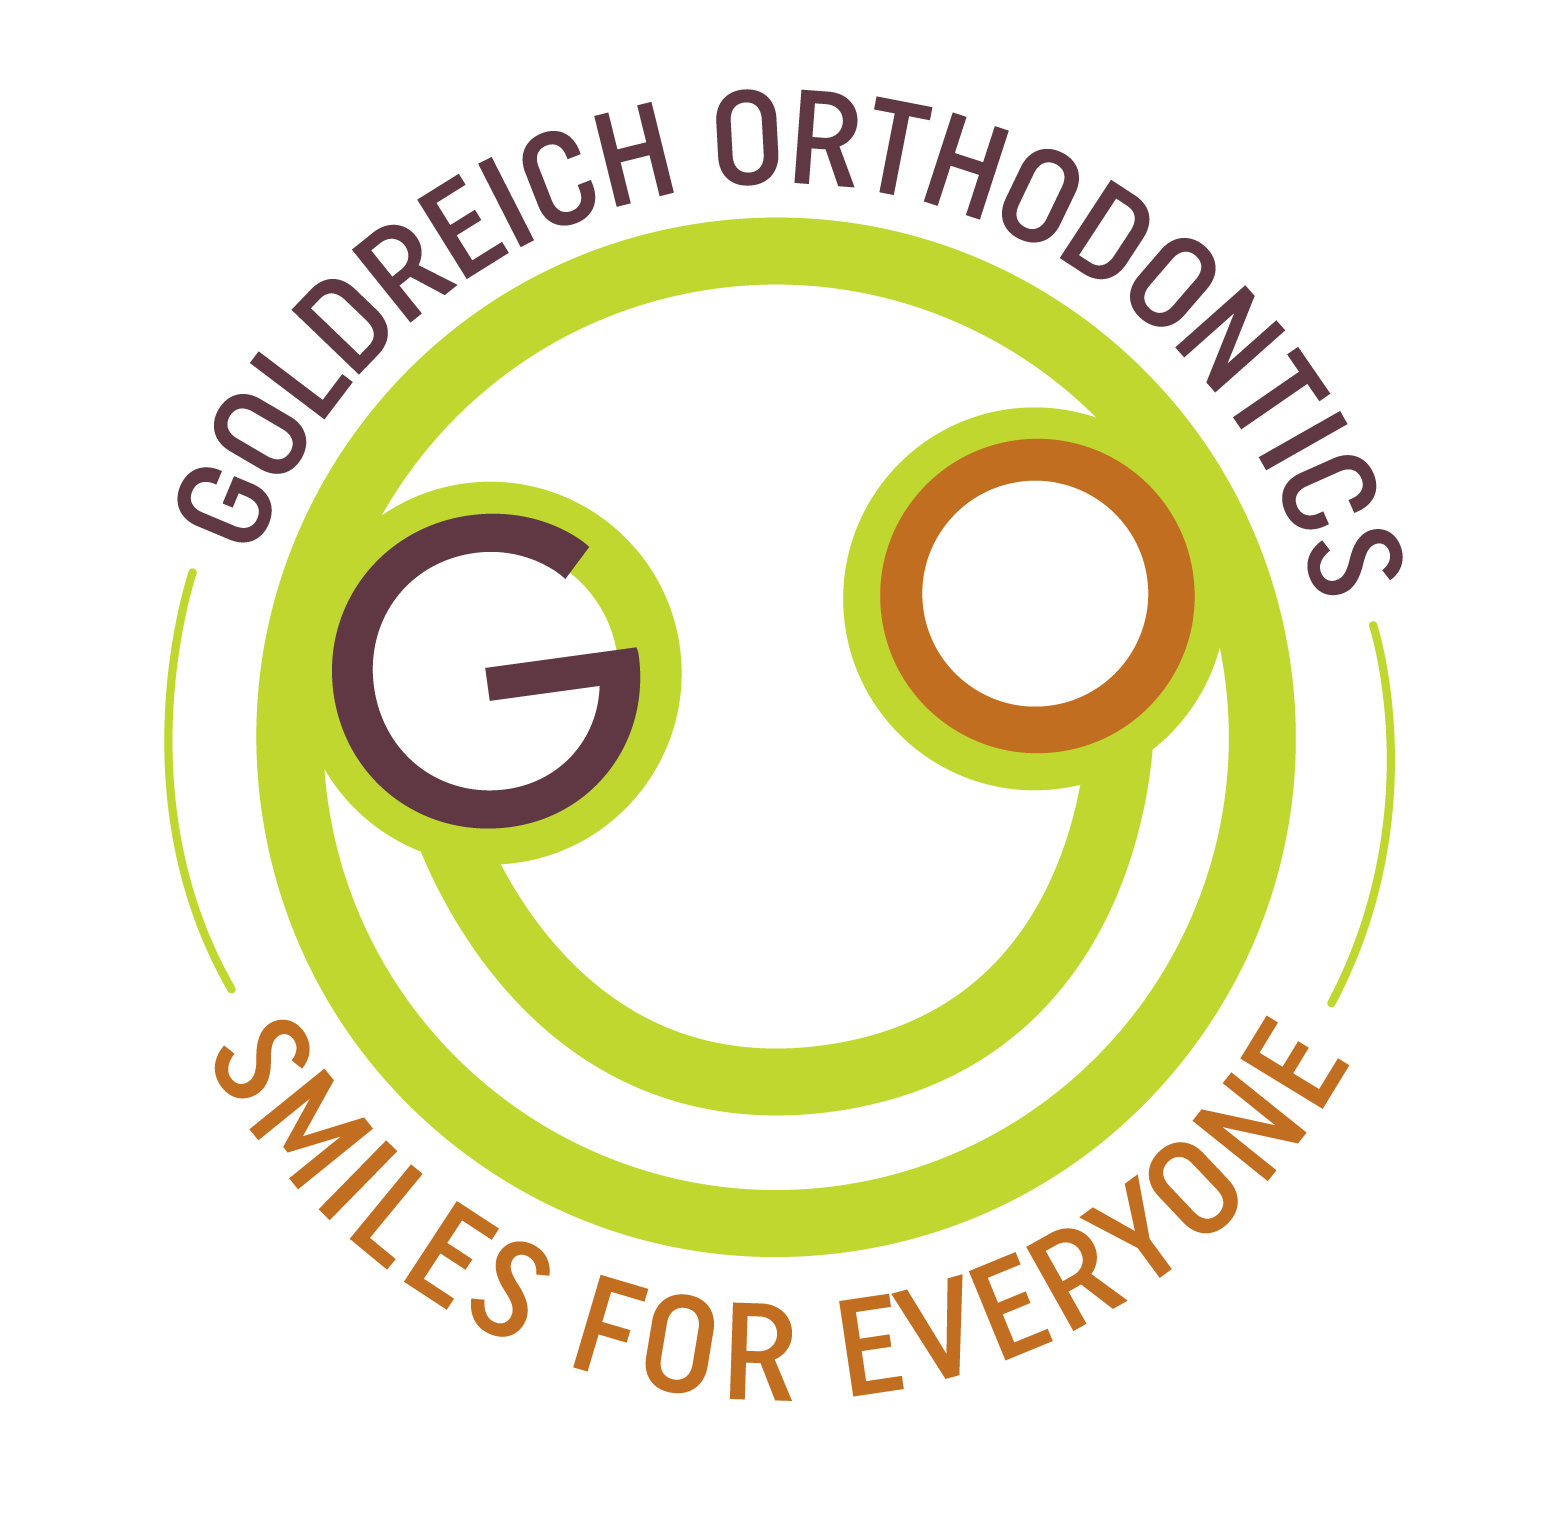 Goldreich Orthodontics